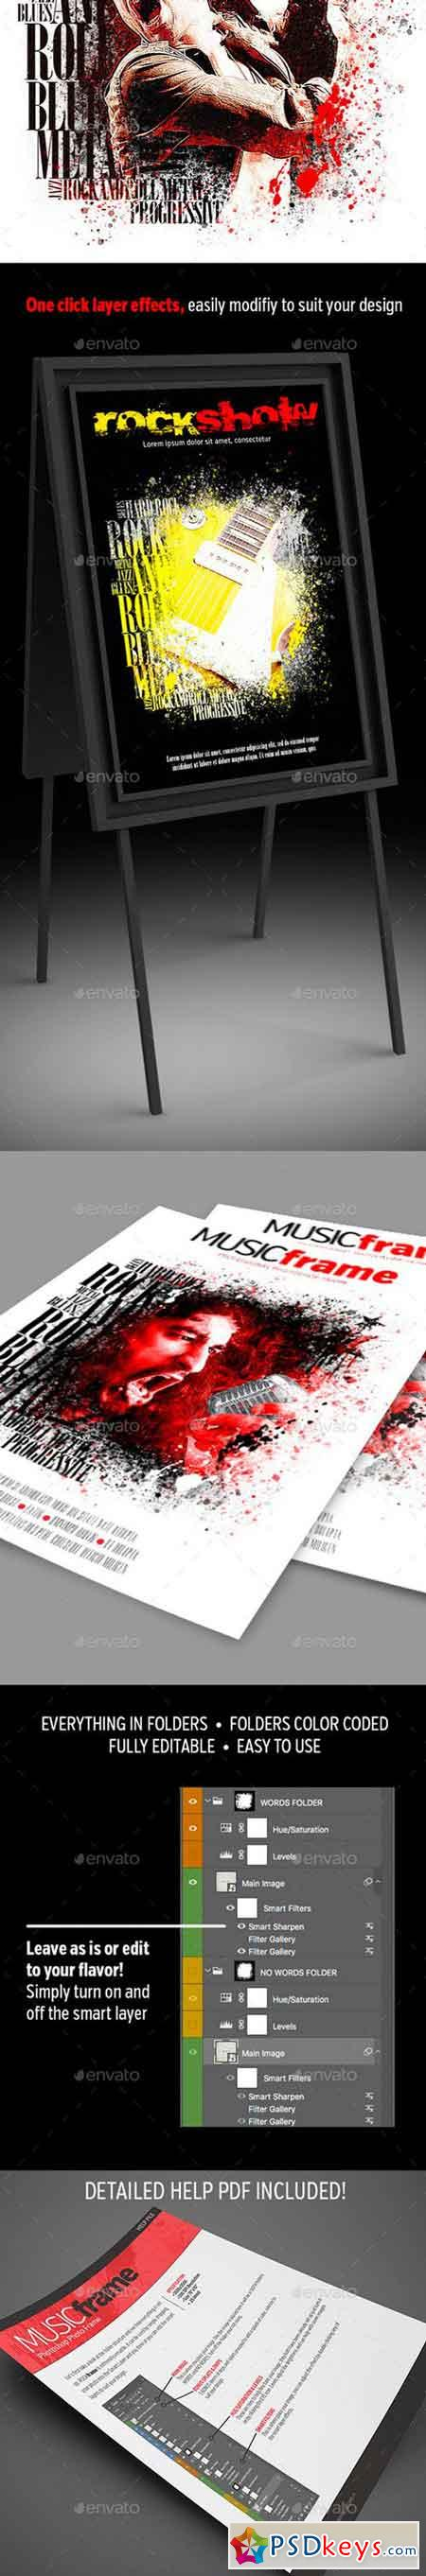 Music Frame Photo Template 21378910